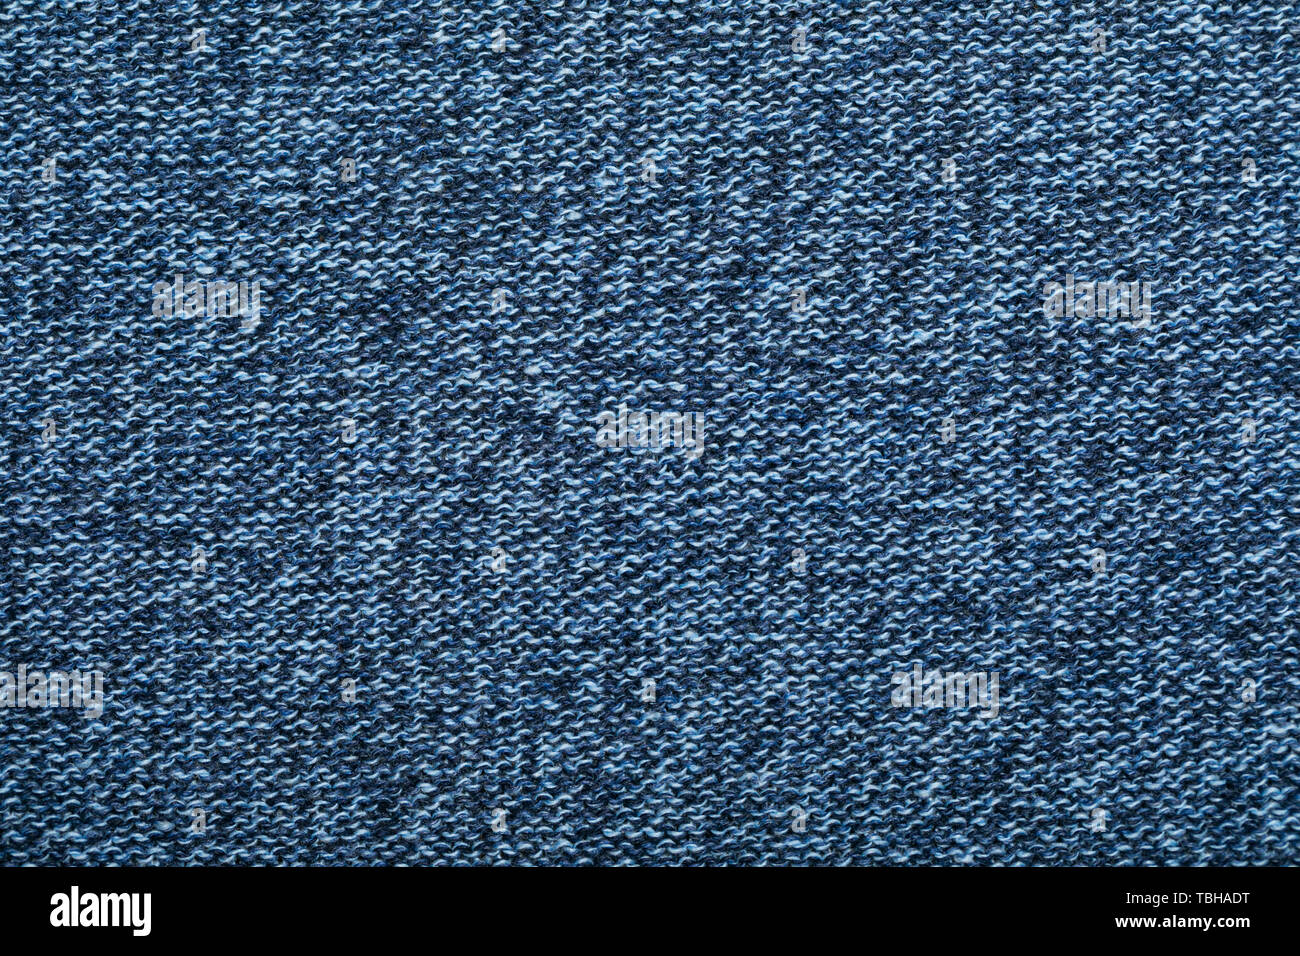 9343f68654c Dark blue melange knitted fabric made of heather mixed yarn textured  background